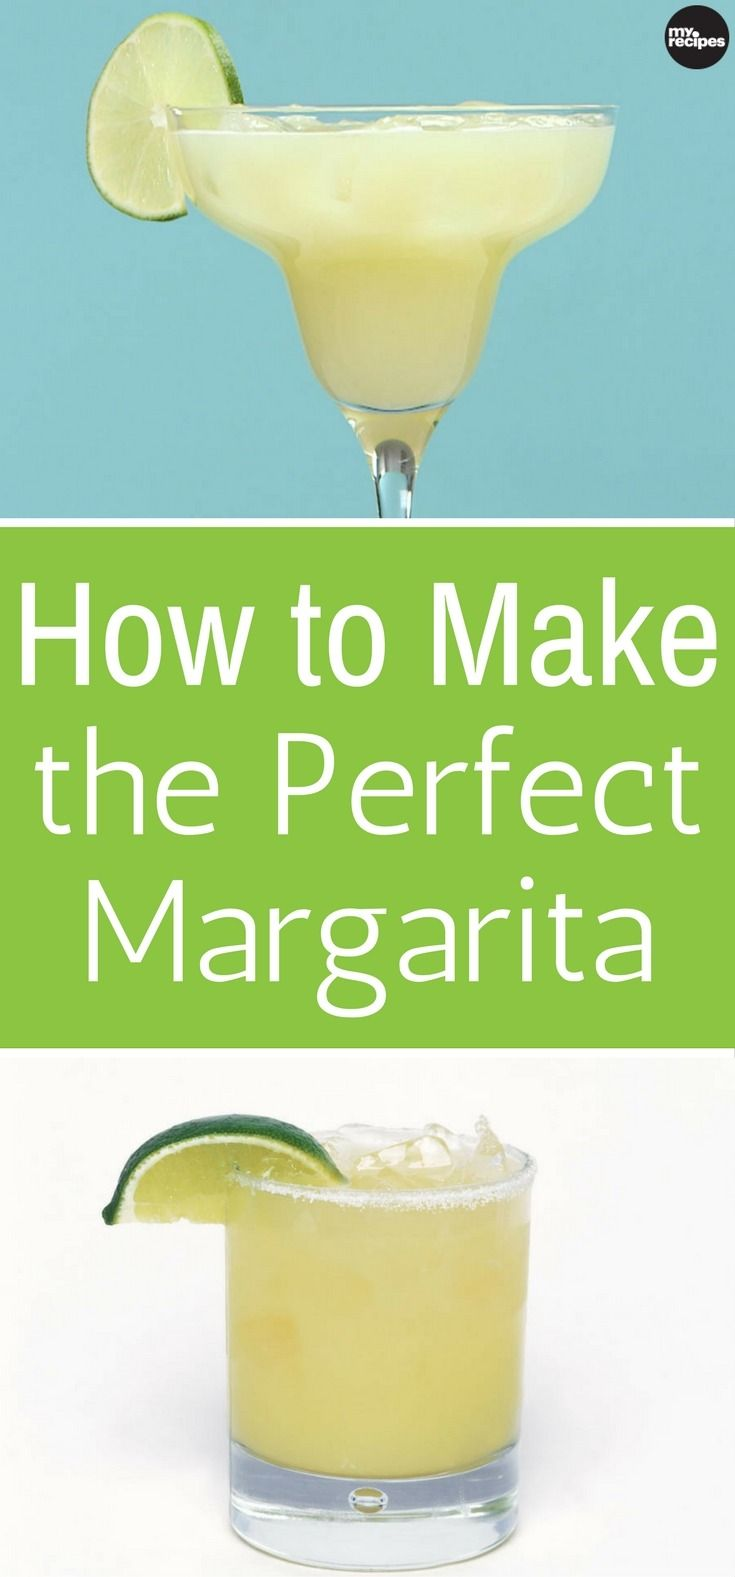 A perfect margarita isn't tough to mix. All you need are 4 simple elements and the right formula for combining them. A well-made margarita is a perfectly balanced, tart-sweet, refreshing, tequila-based cocktail that doesn't taste a thing like regret. And the best part is, you most assuredly do not need to be some sort of mixologist to make this classic cocktail. | MyRecipes